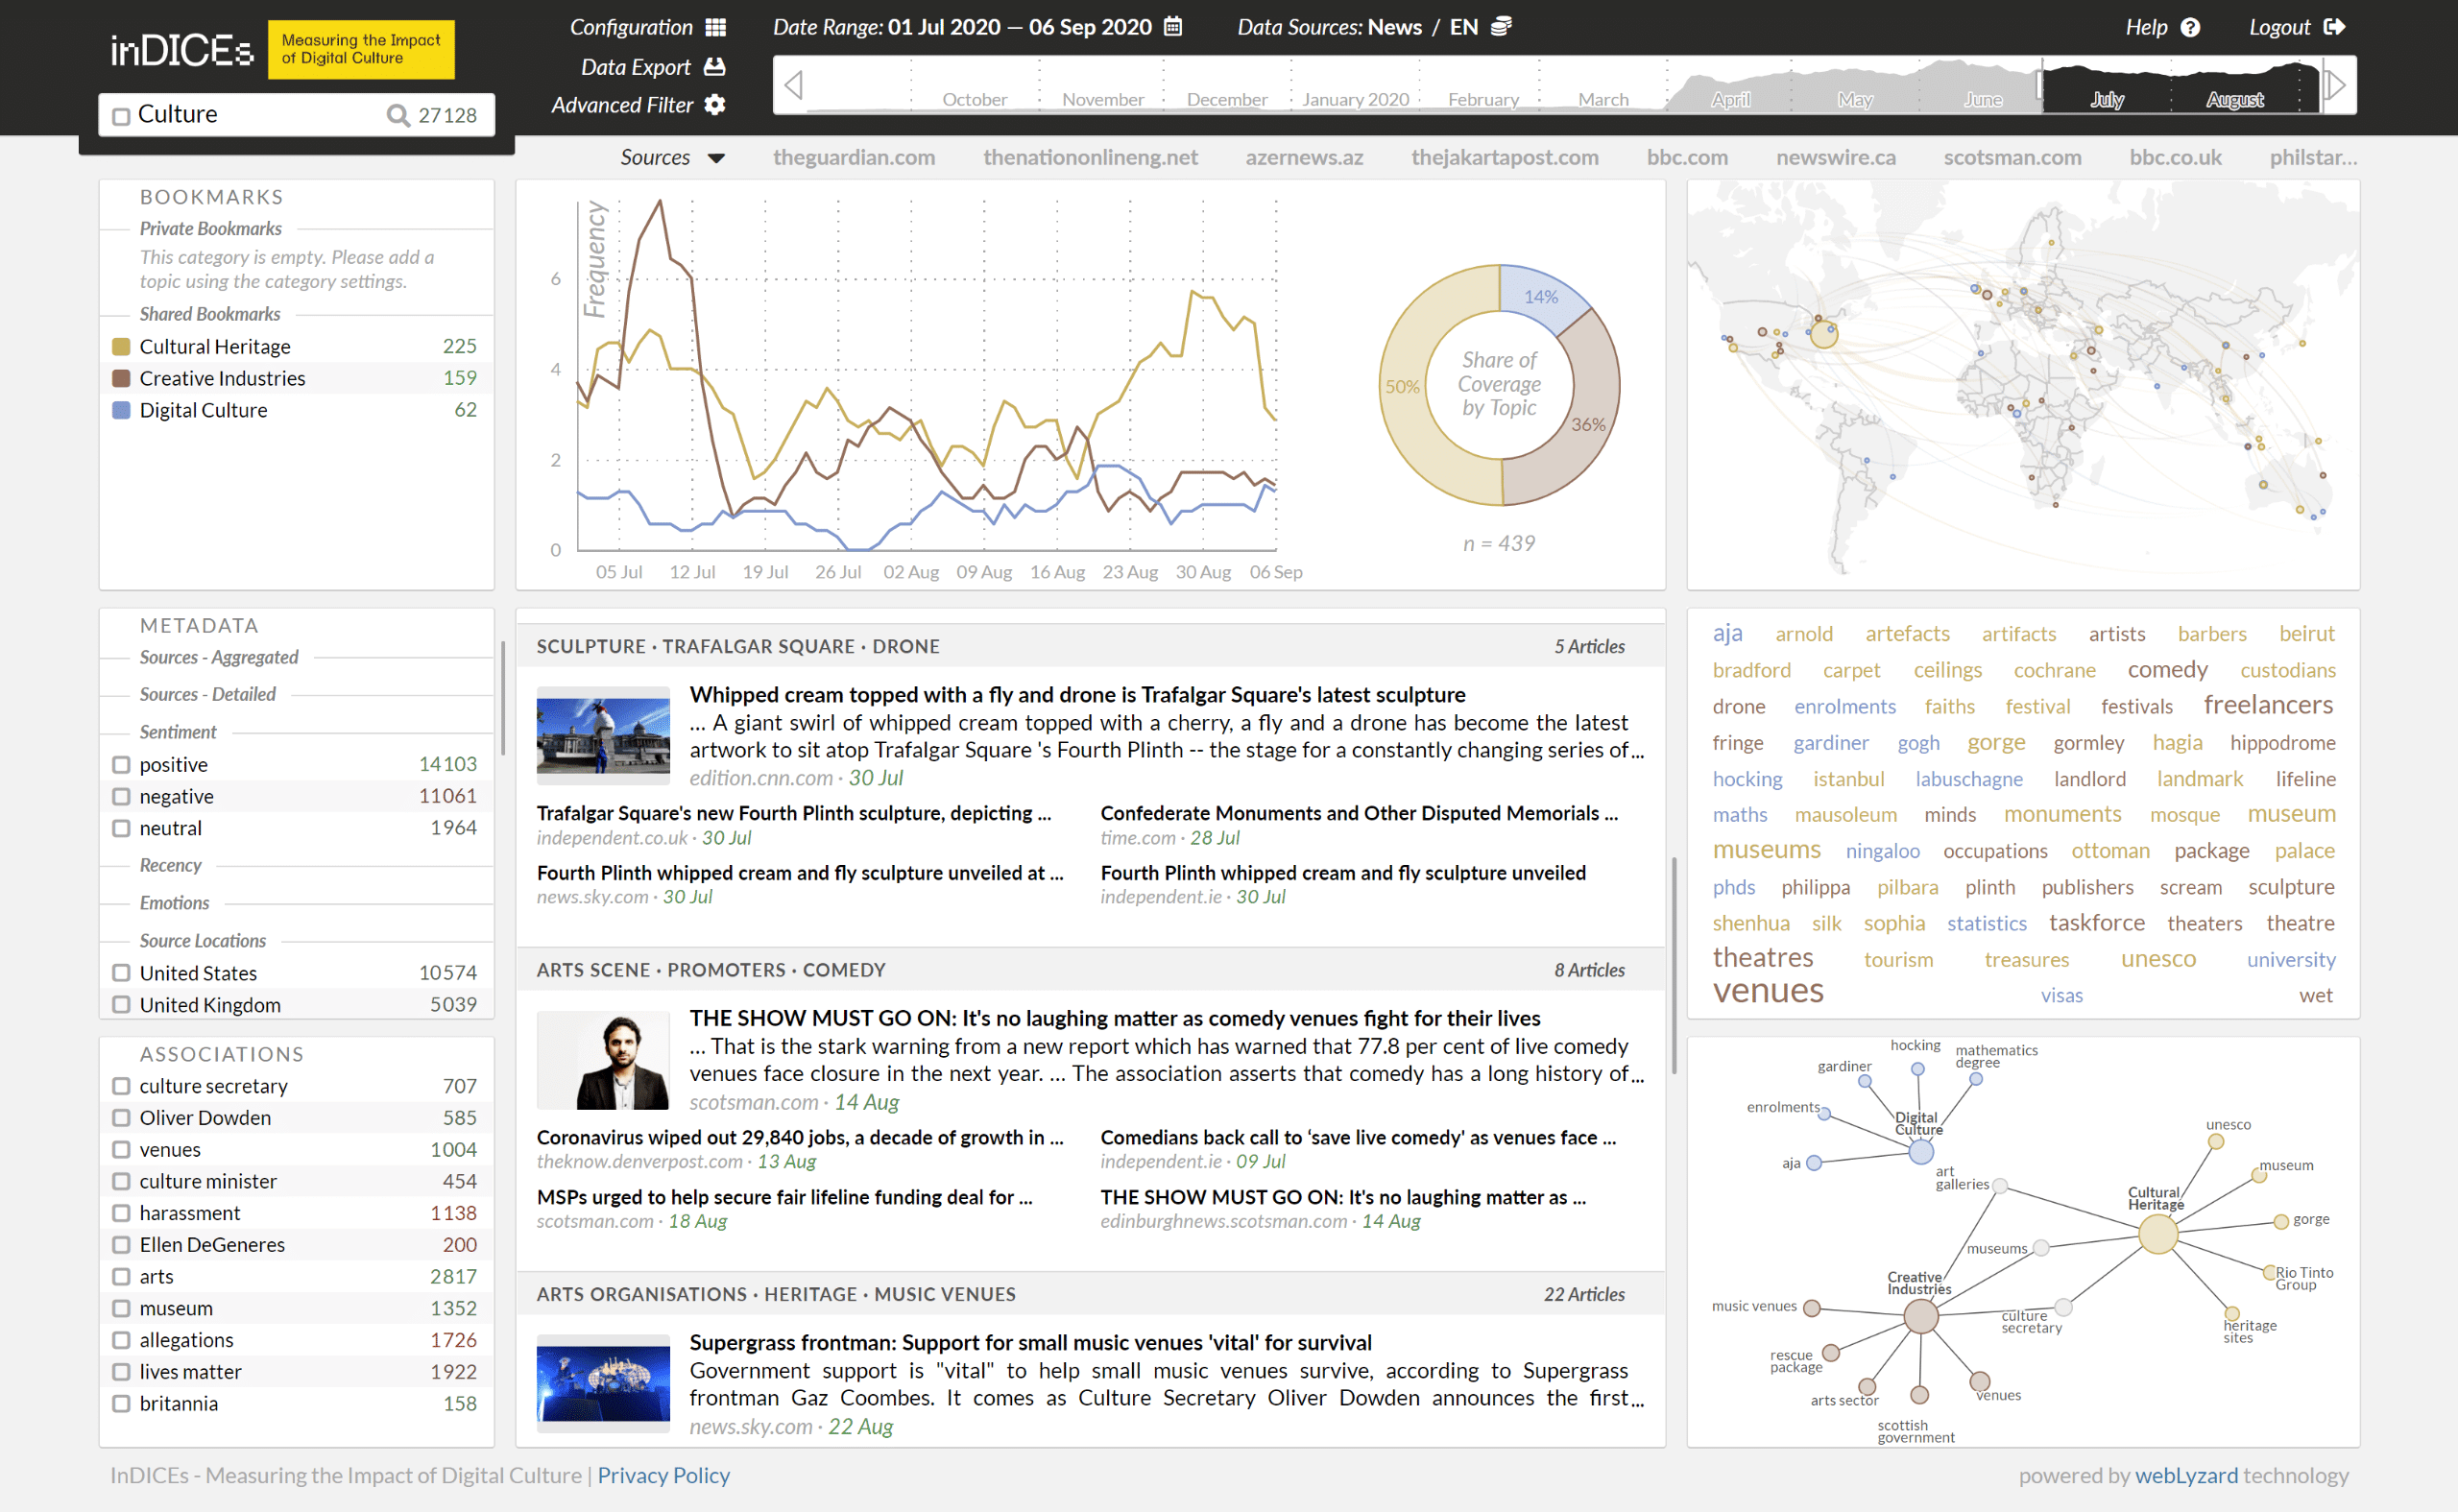 inDICES Visual Analytics Dashboard on Digital Culture